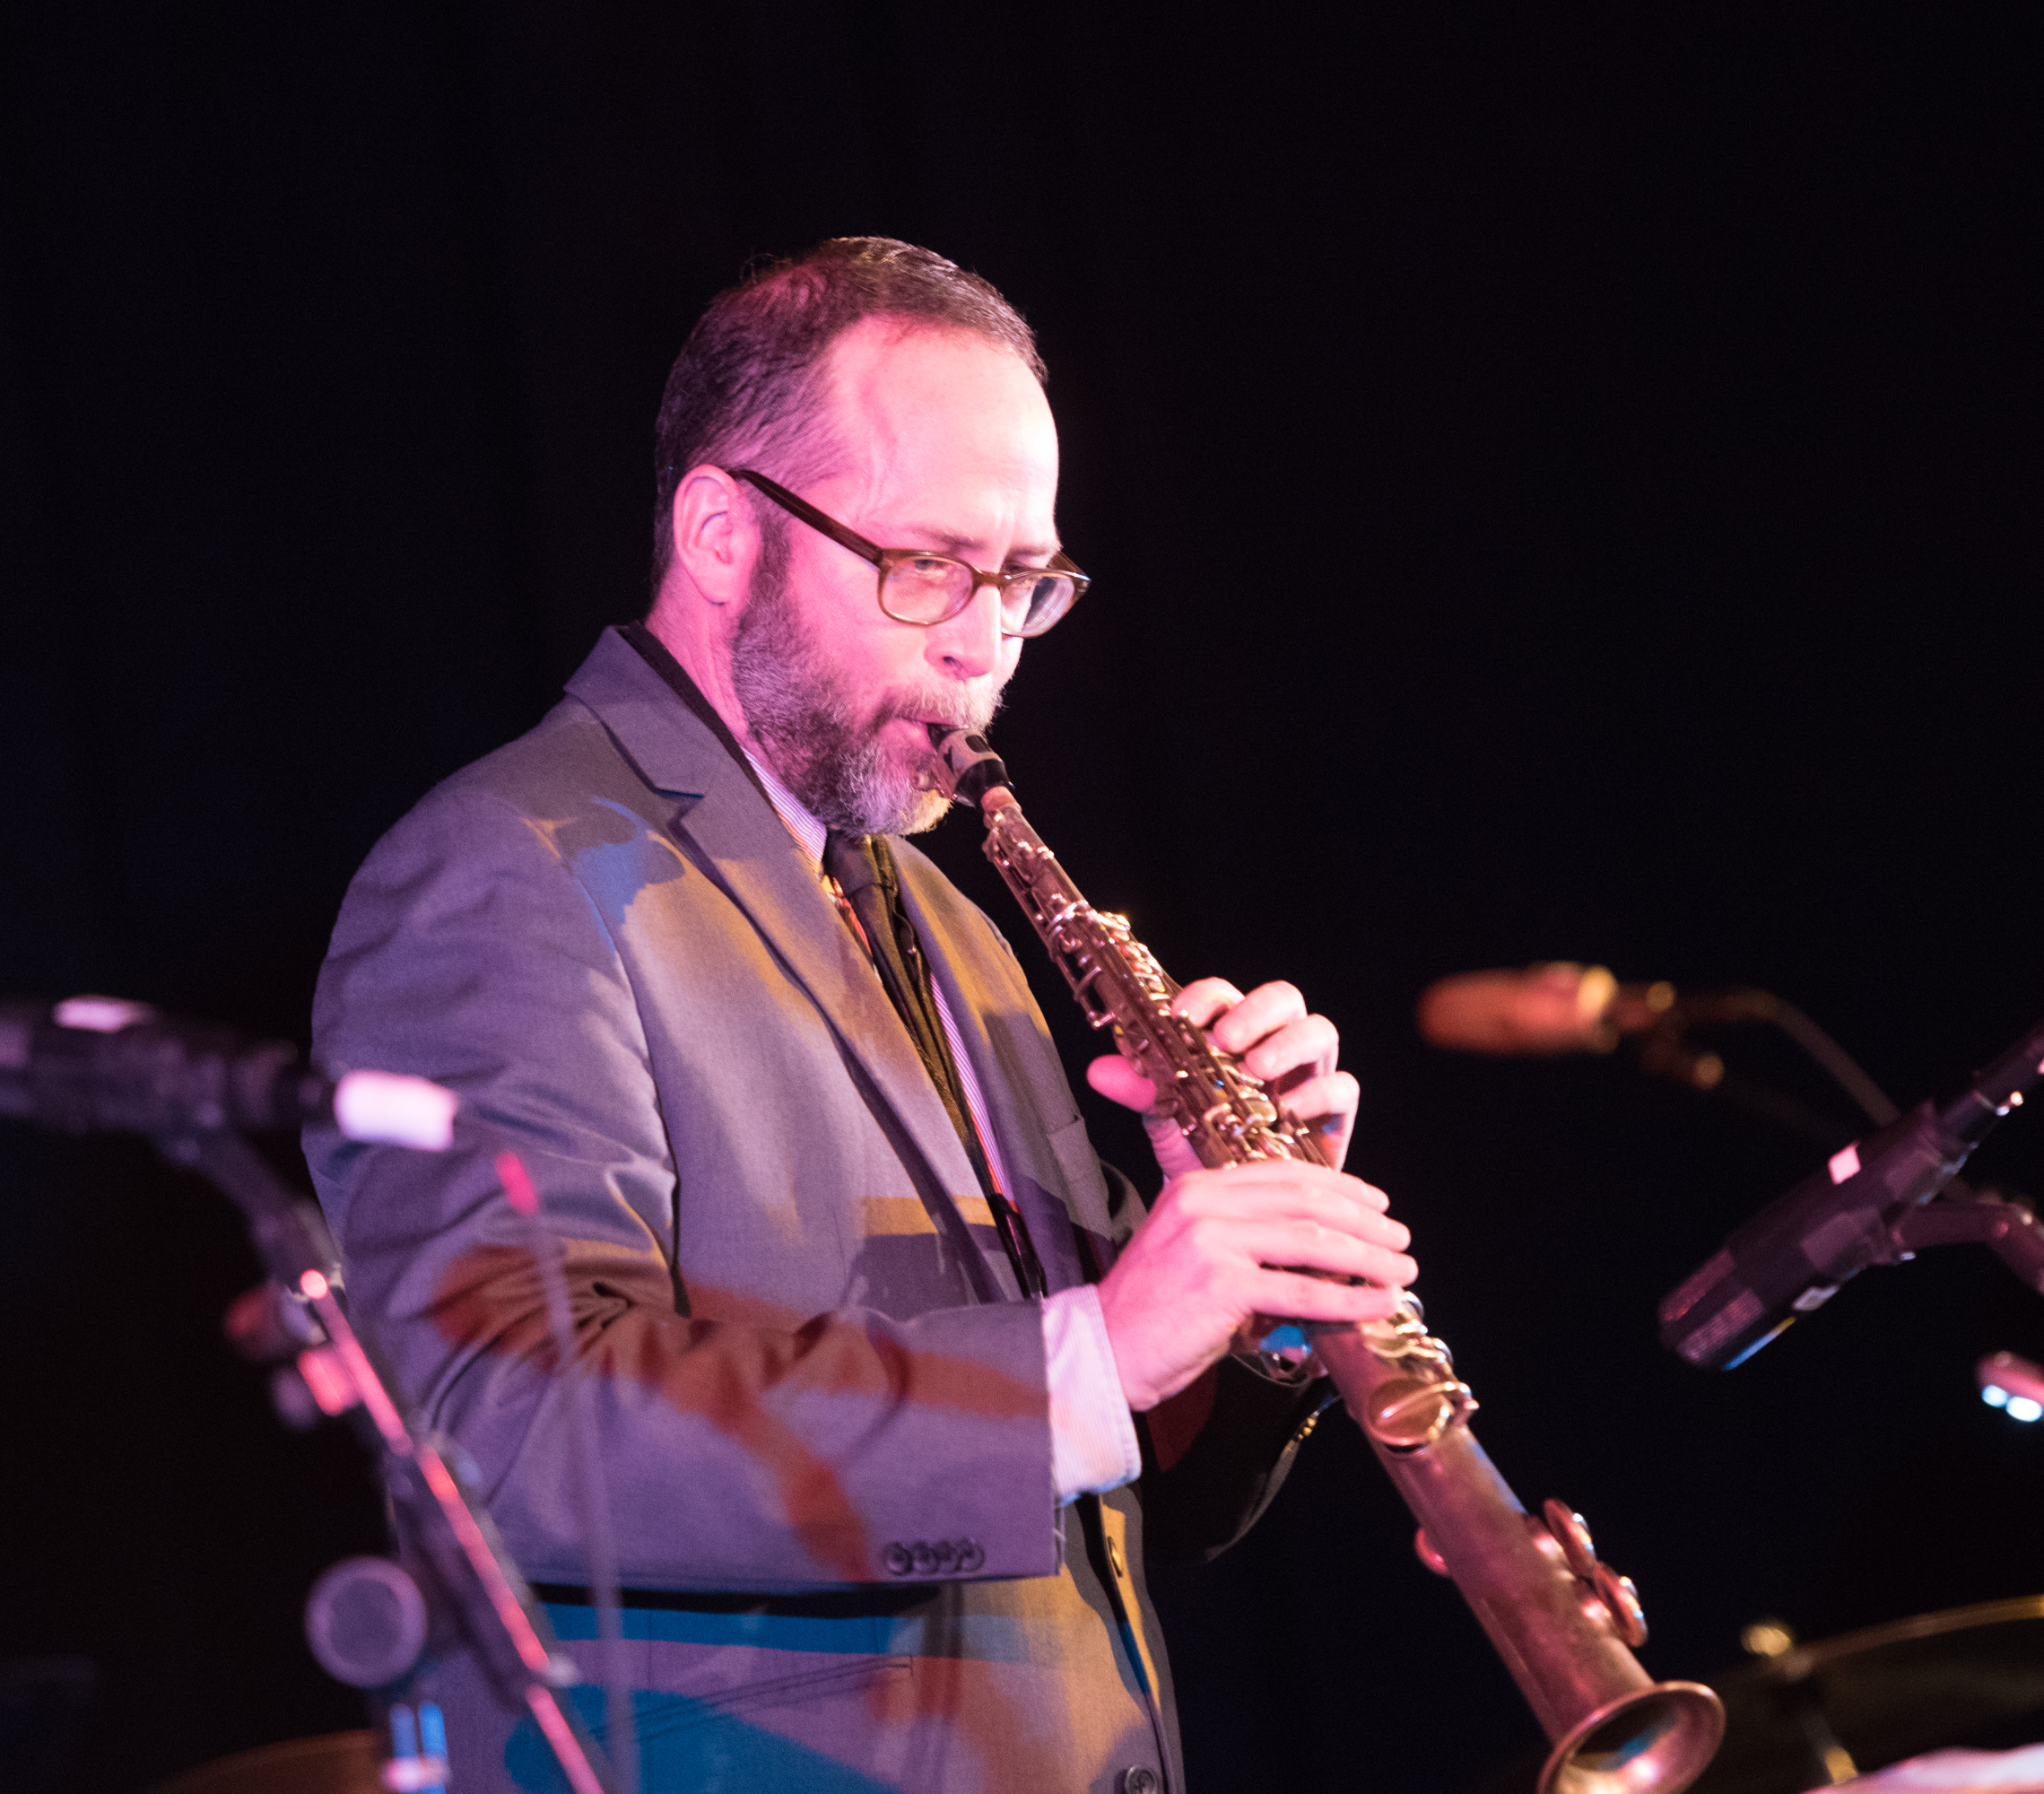 Michael Blake with Strange and Beautiful: the Music of John Lurie and the Lounge Lizards at the Nyc Winter Jazzfest 2015